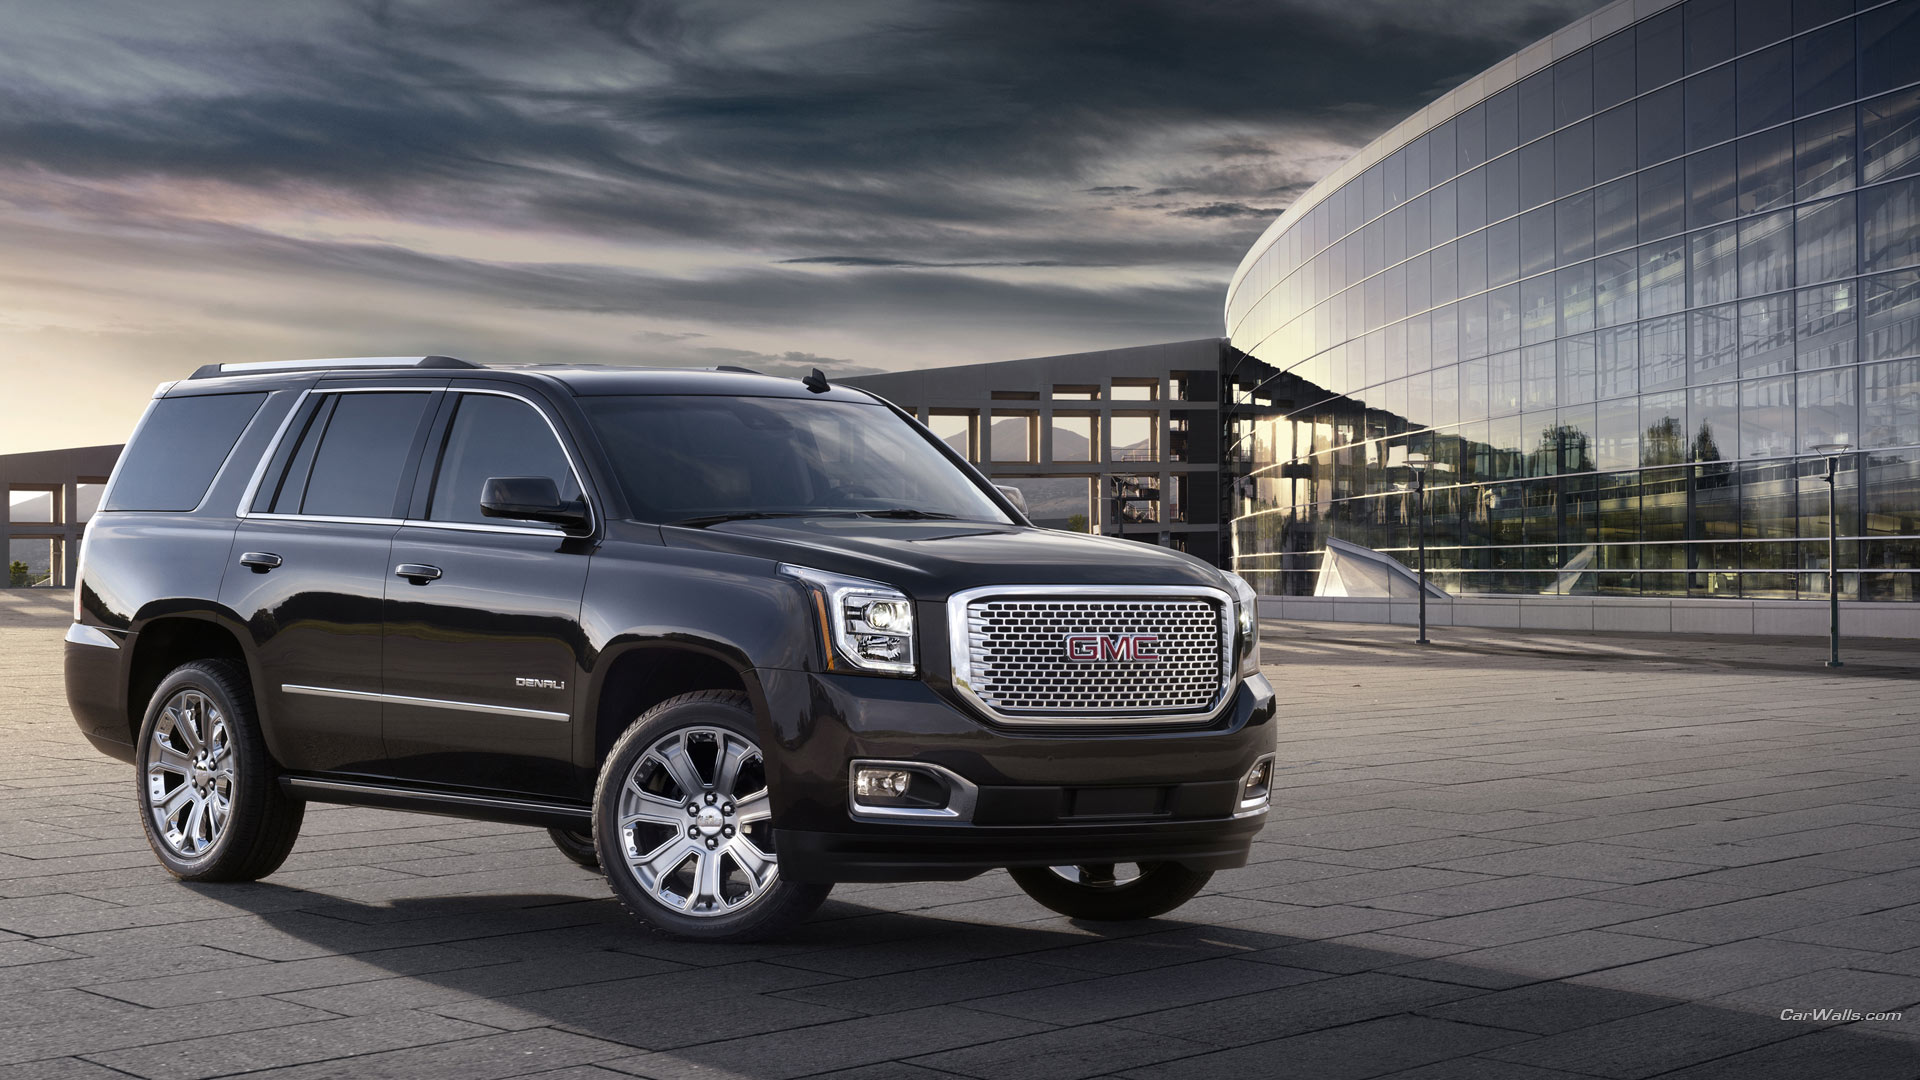 2015 GMC Yukon XL And Denali Full HD Wallpaper Background